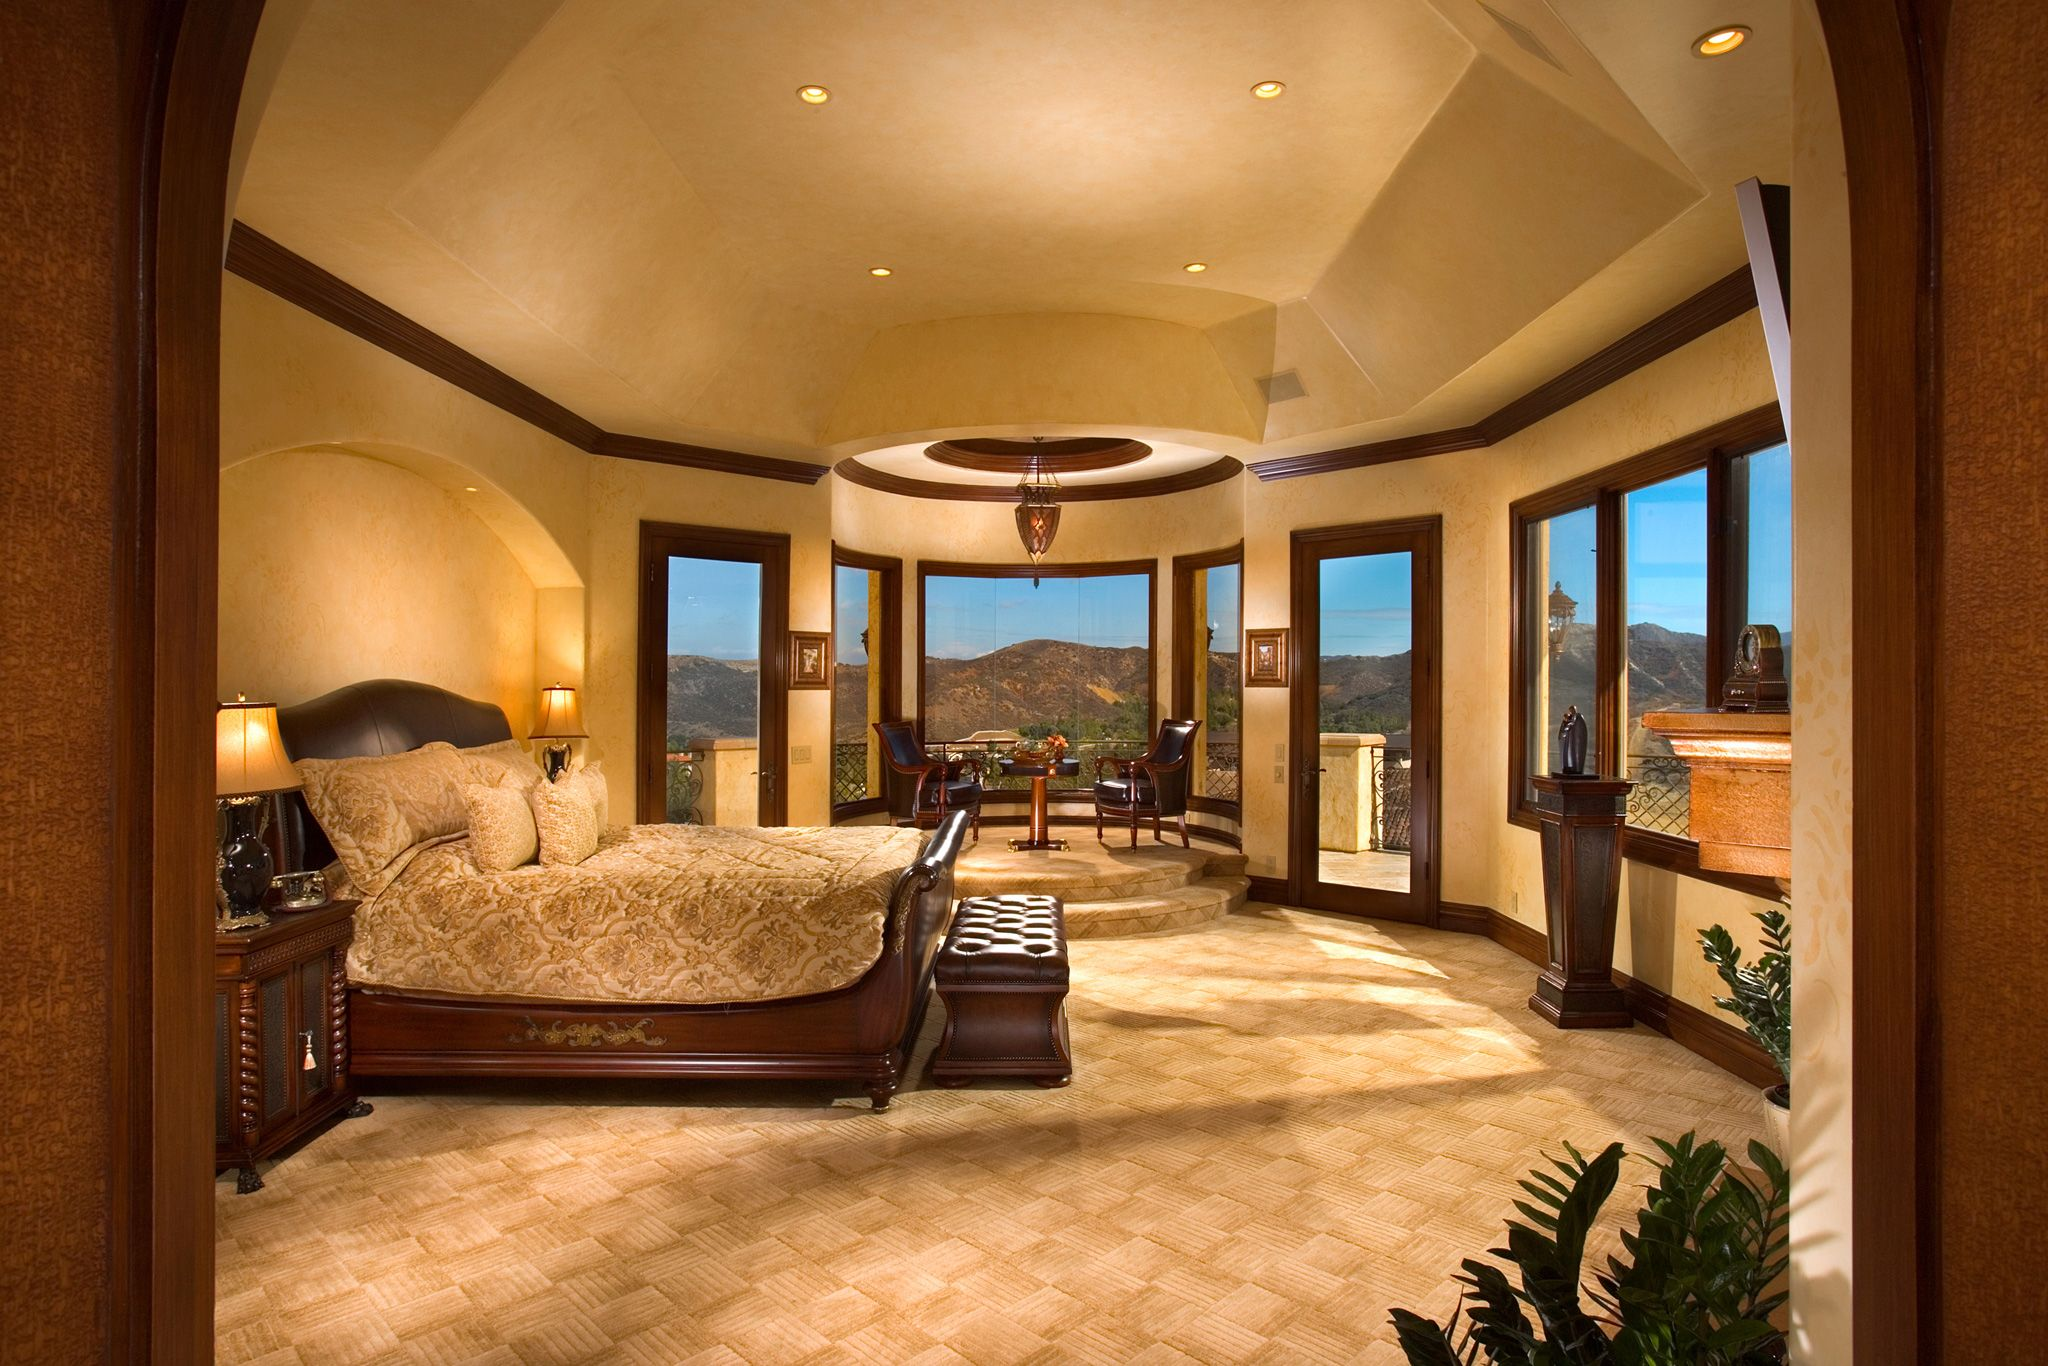 21 incredible master bedrooms design ideas luxury master for Luxury bedroom inspiration